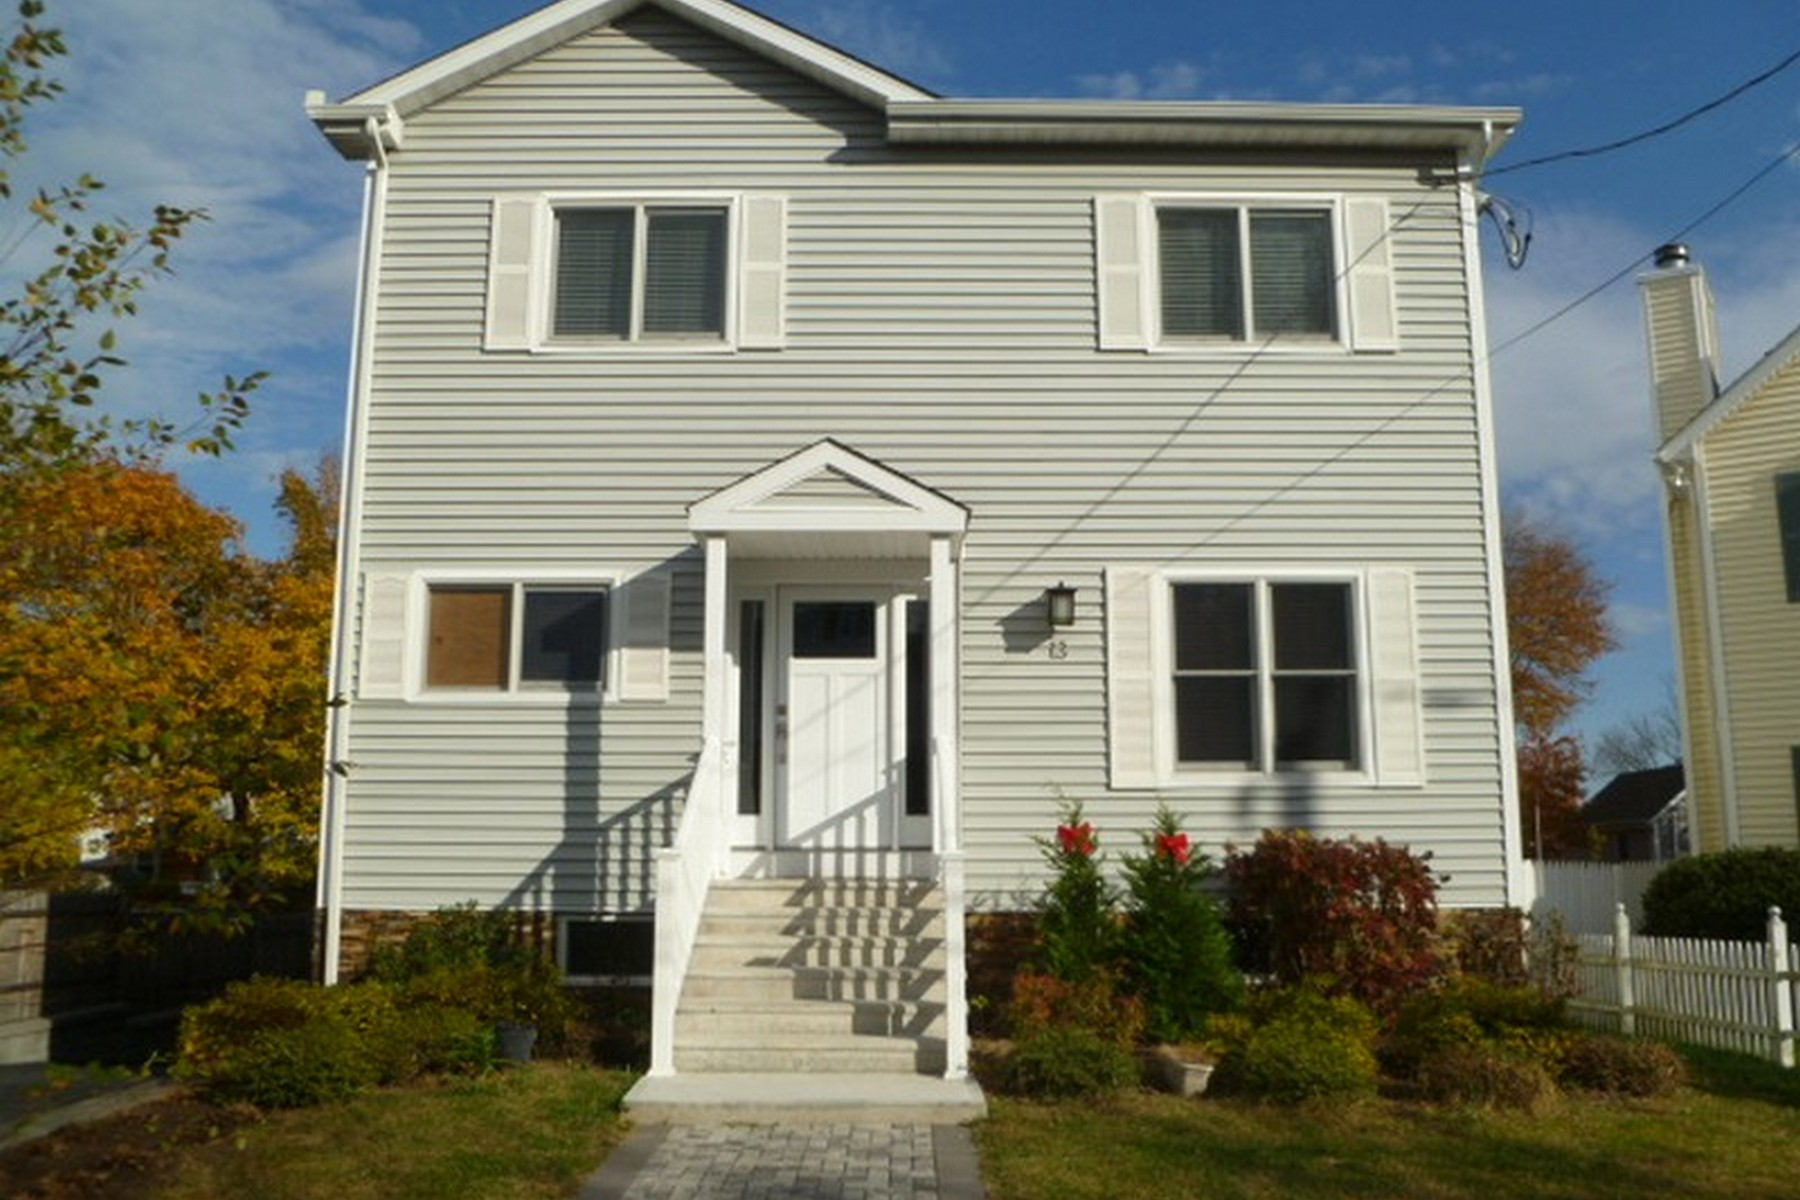 Multi-Family Home for Rent at Cove Family Rental 13 Dora Street A Stamford, Connecticut, 06902 United States